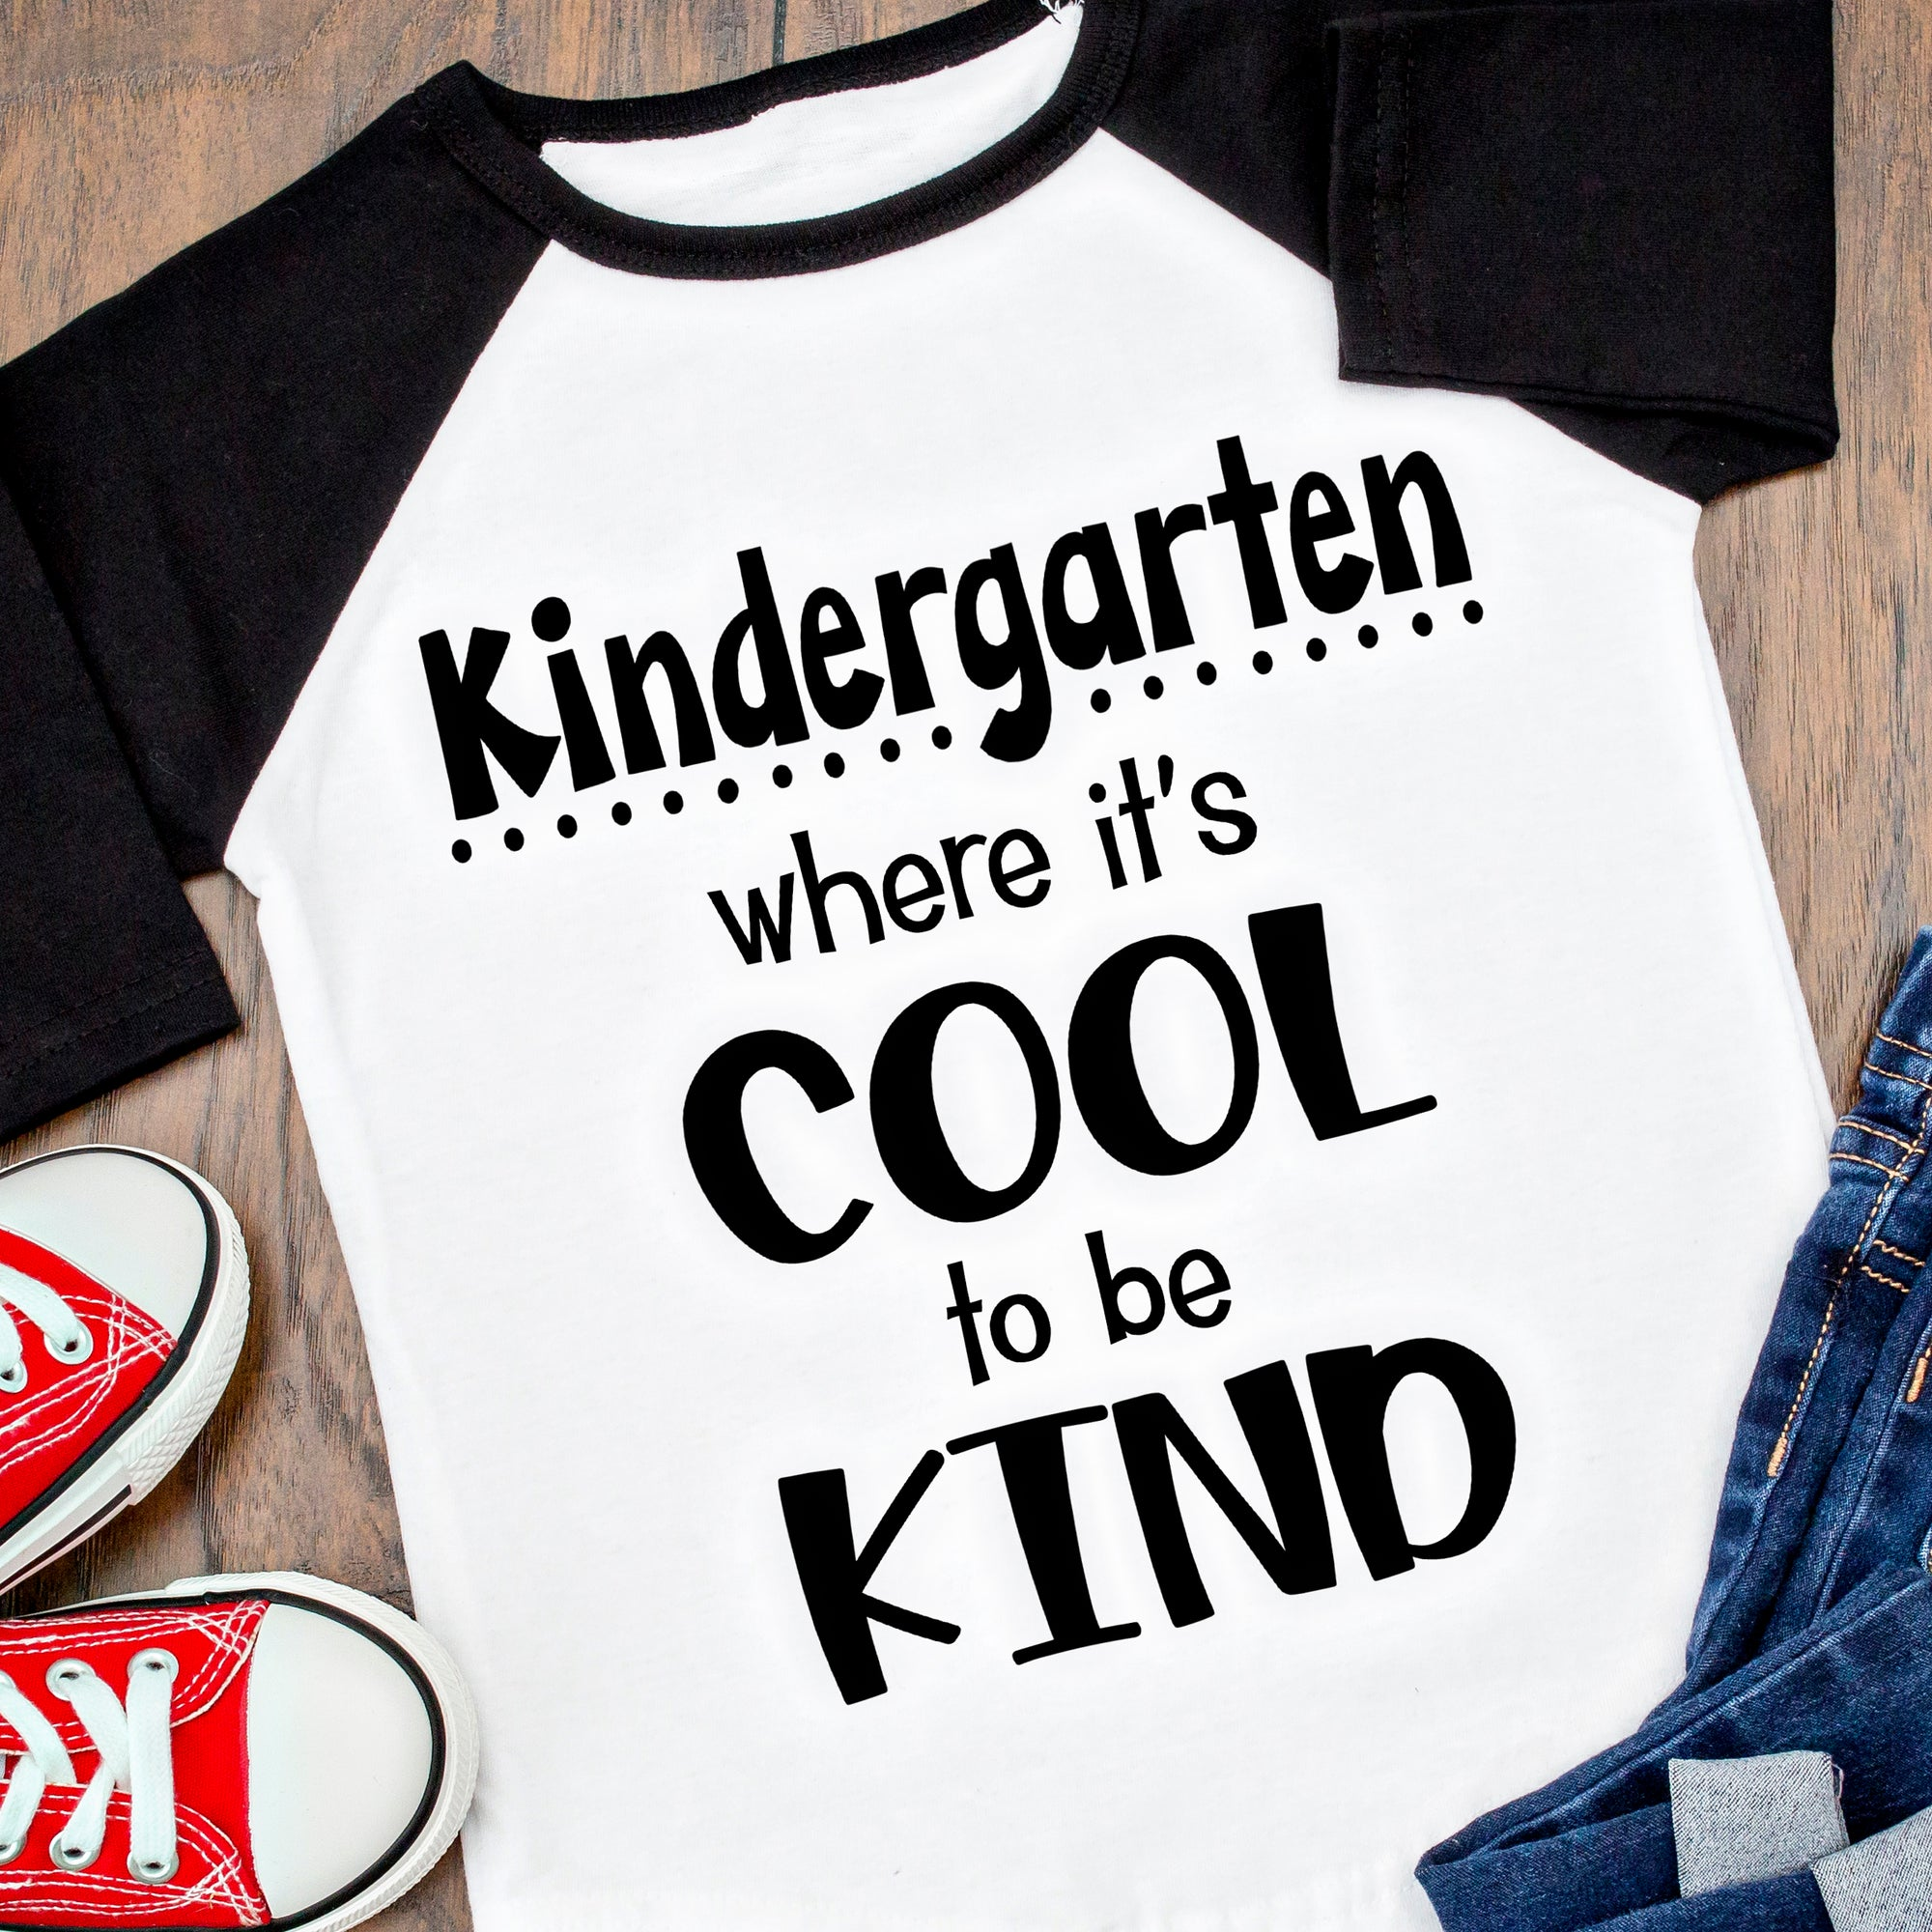 Kindergarten SVG, First Day of Kindergarten SVG File, Kindergarten Shirt SVG, Kindergarten Cool to be KInd SVG, Kindergarten Saying SVG